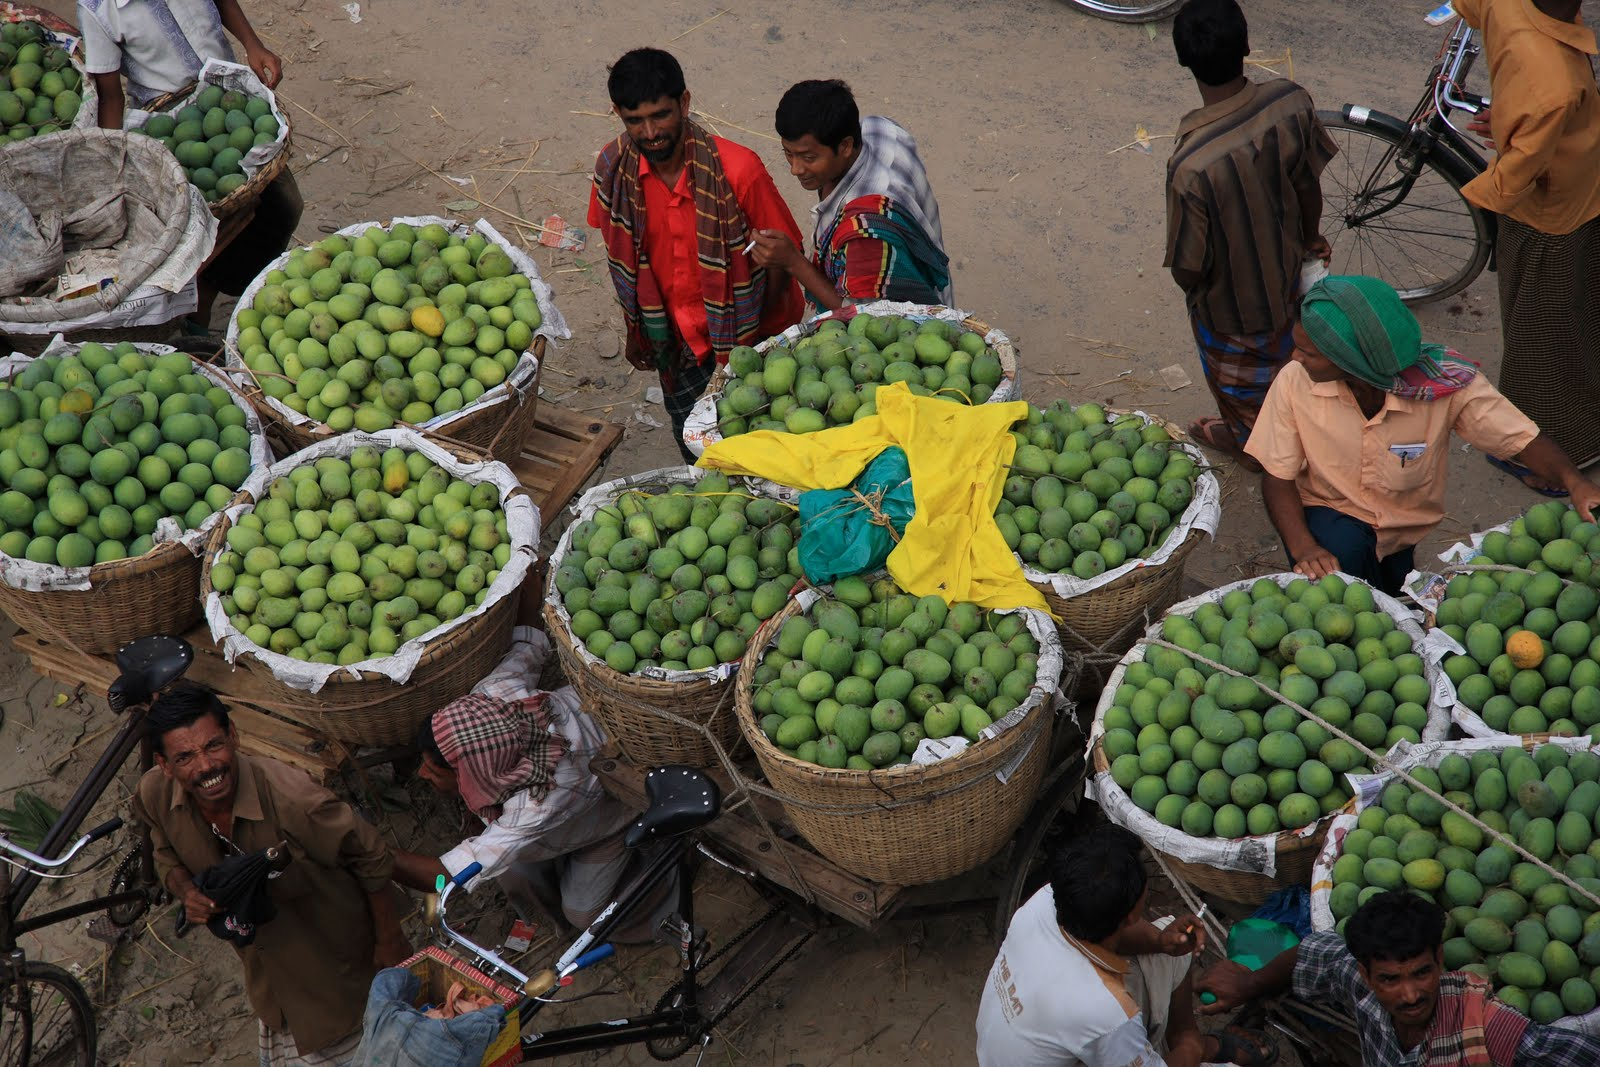 bangladesh my country Bangladesh is a land of natural beauty you can located it in south-east asia beautiful scenarios and cultures are scattered all over my country.